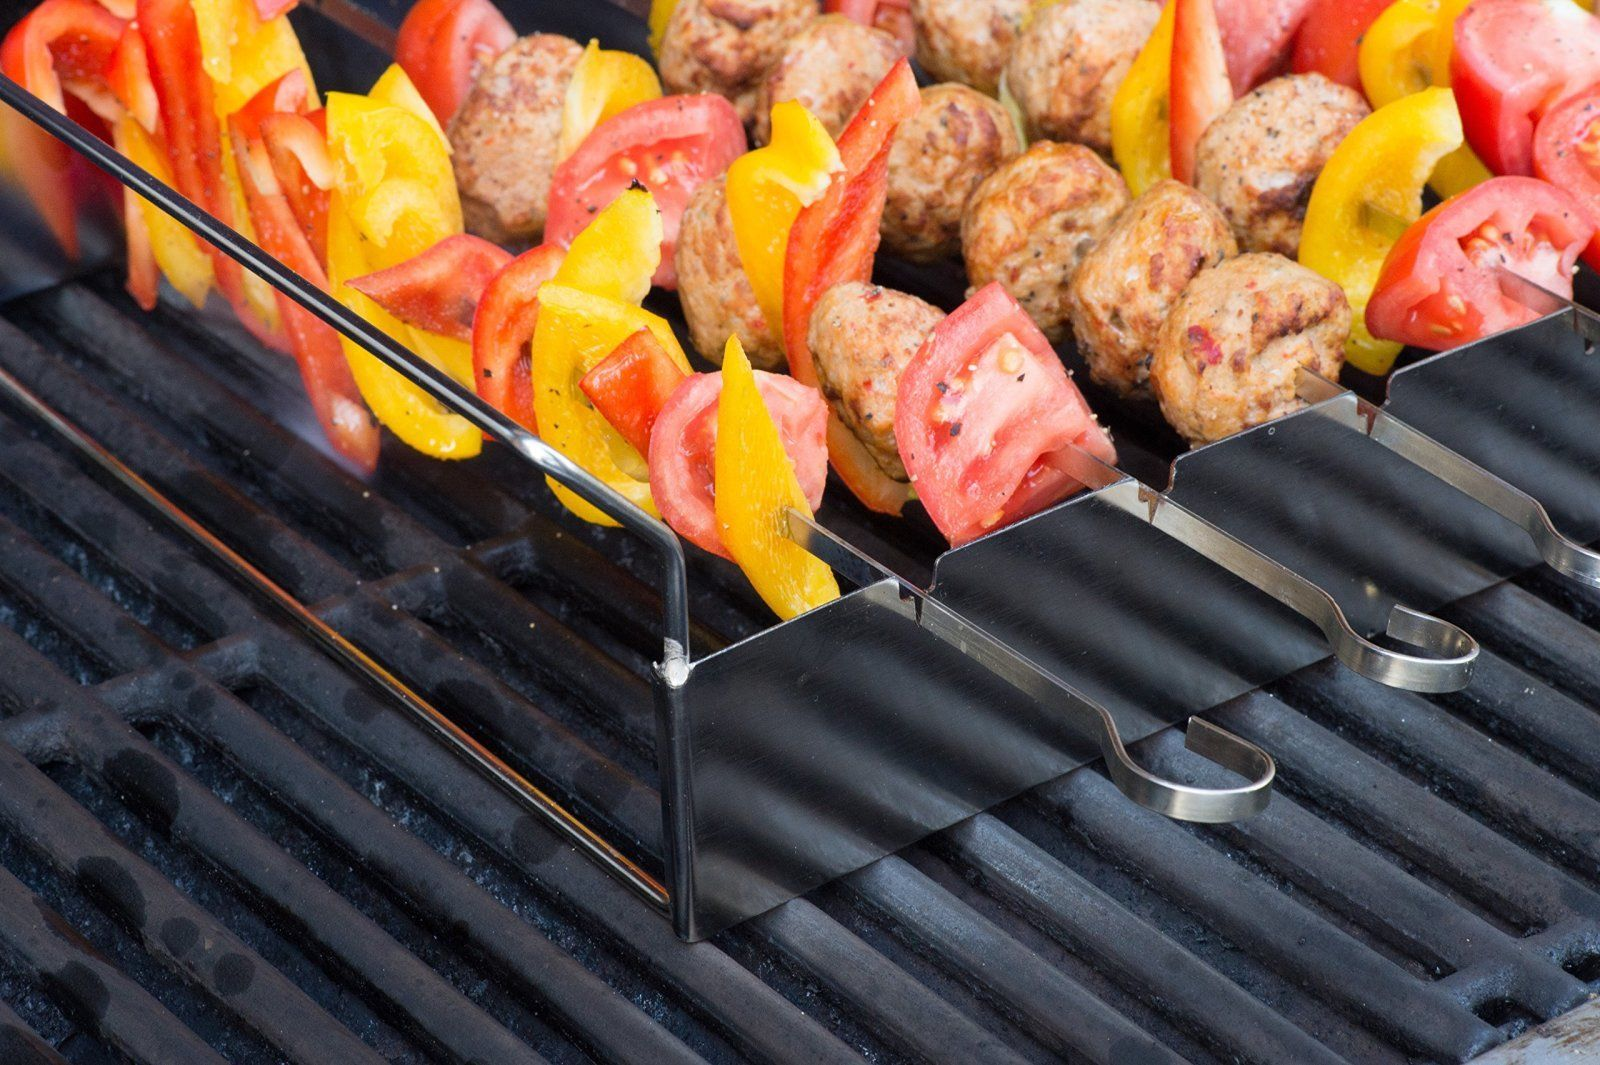 Shish Kabob Grilling Rack with 6x37cm Skewers (BBQ Equipment) – Barbecue Stain